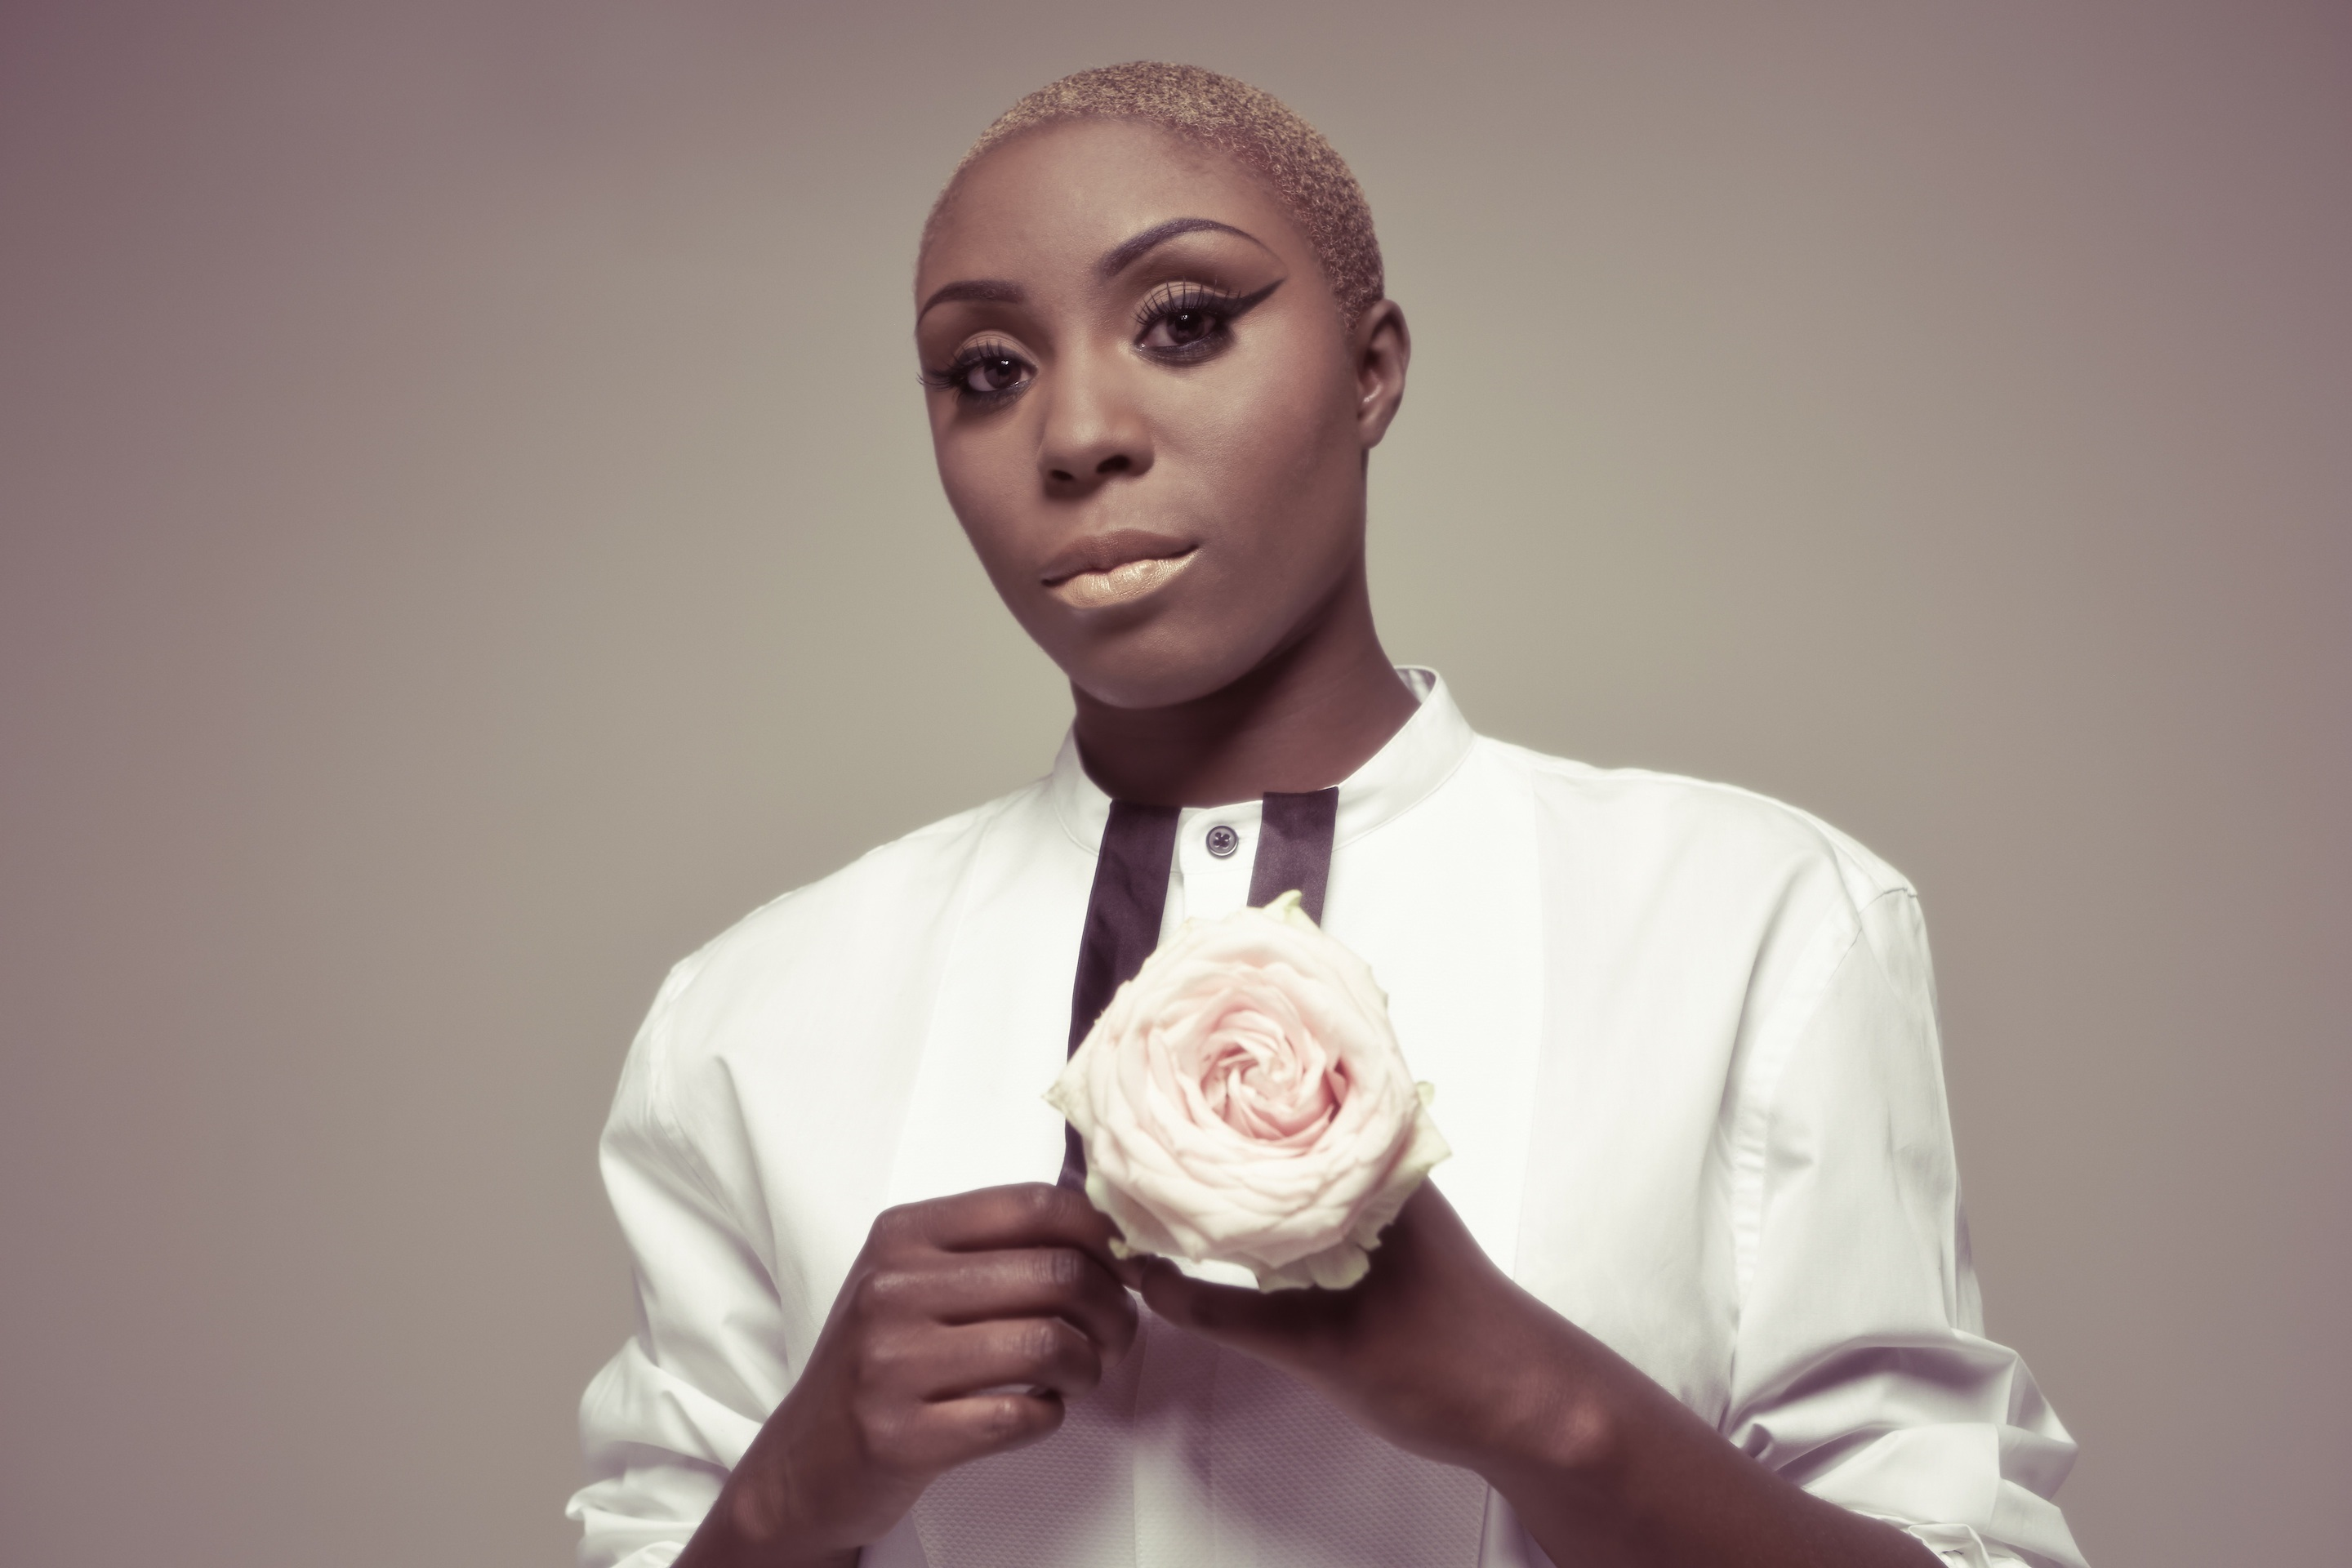 laura mvula for face to face, the moving portrait